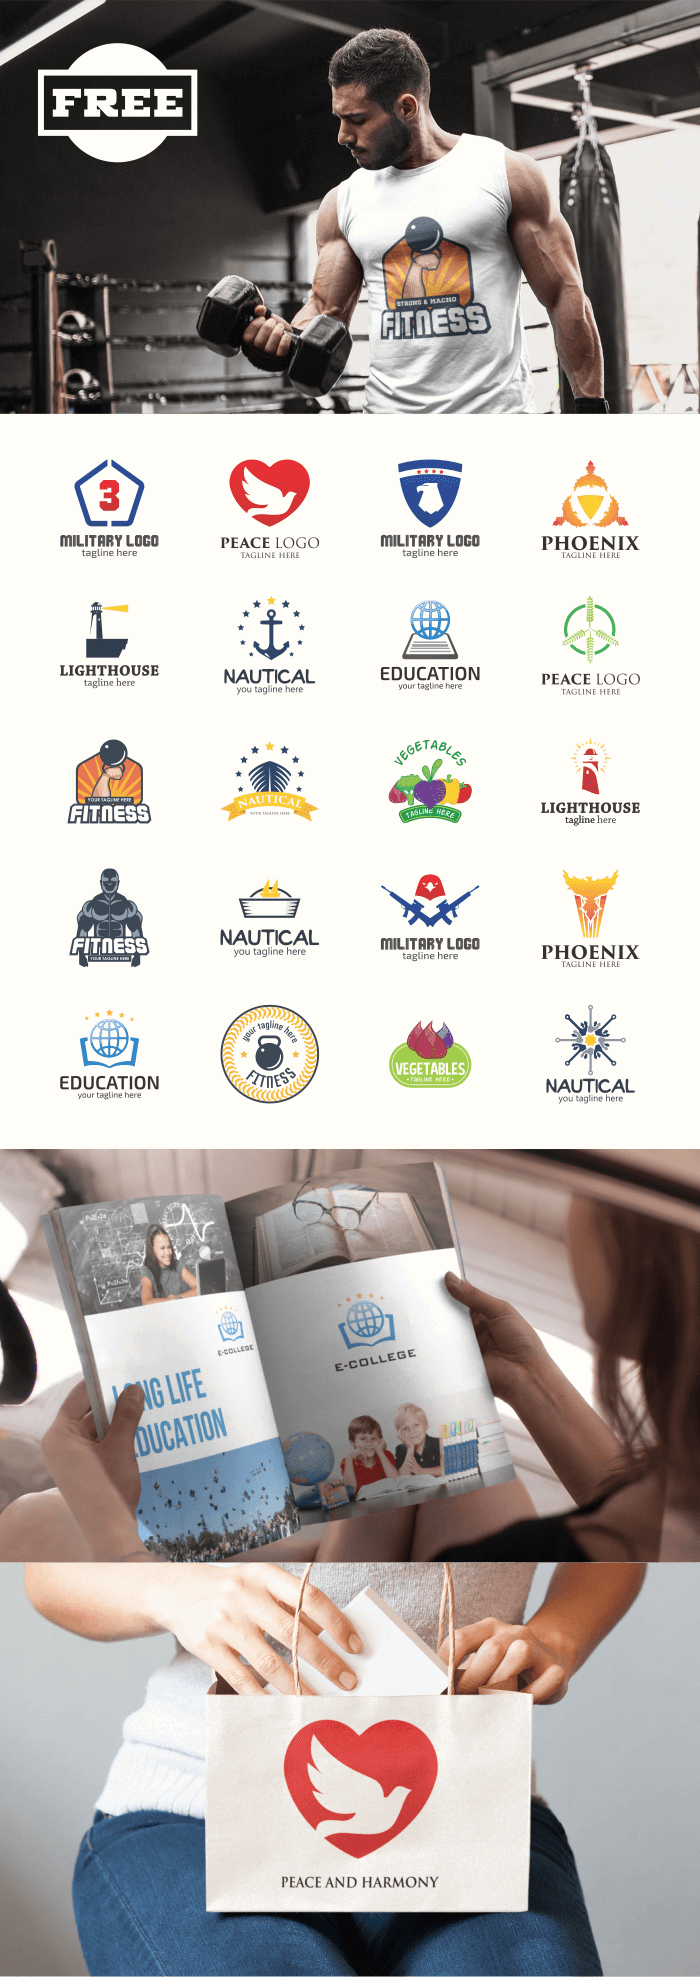 FREE - 200 Professional Branding Logo Design Collections